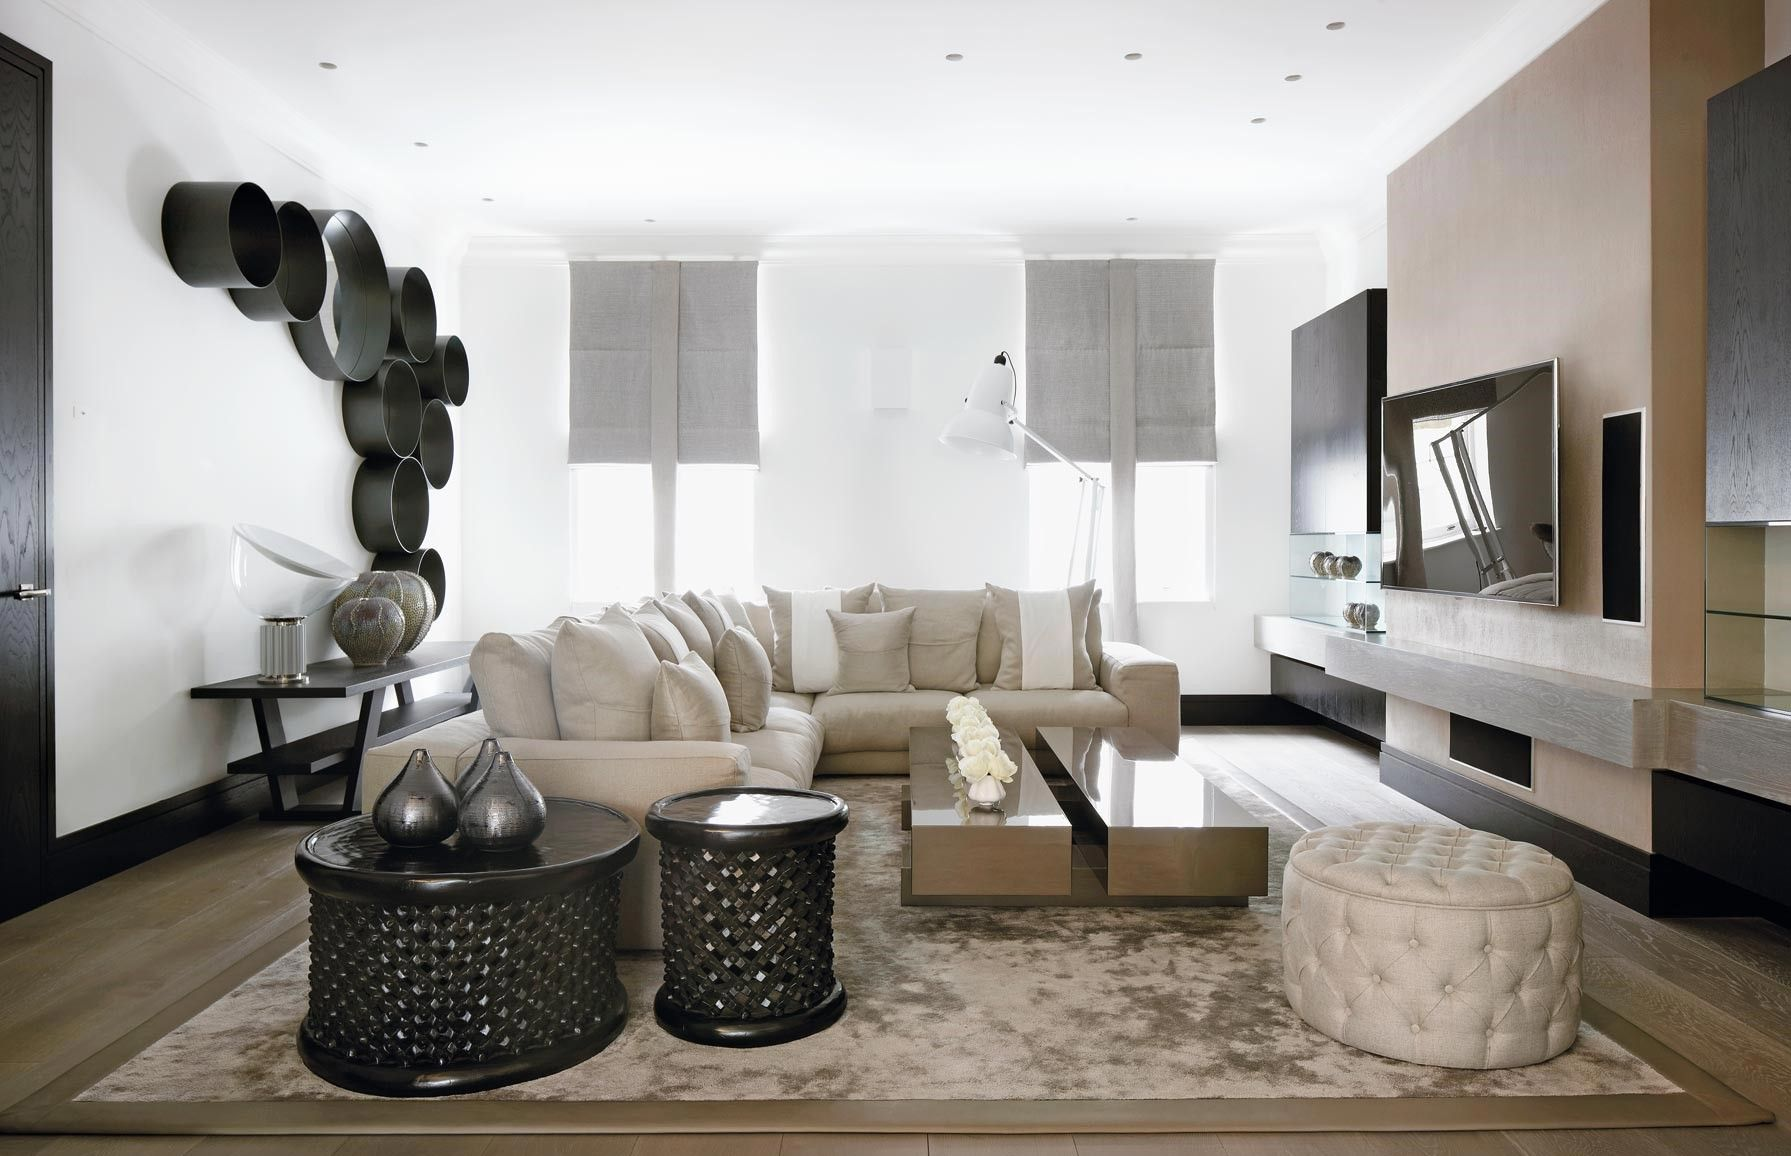 10 kelly hoppen living room ideas modern interiorsdesign